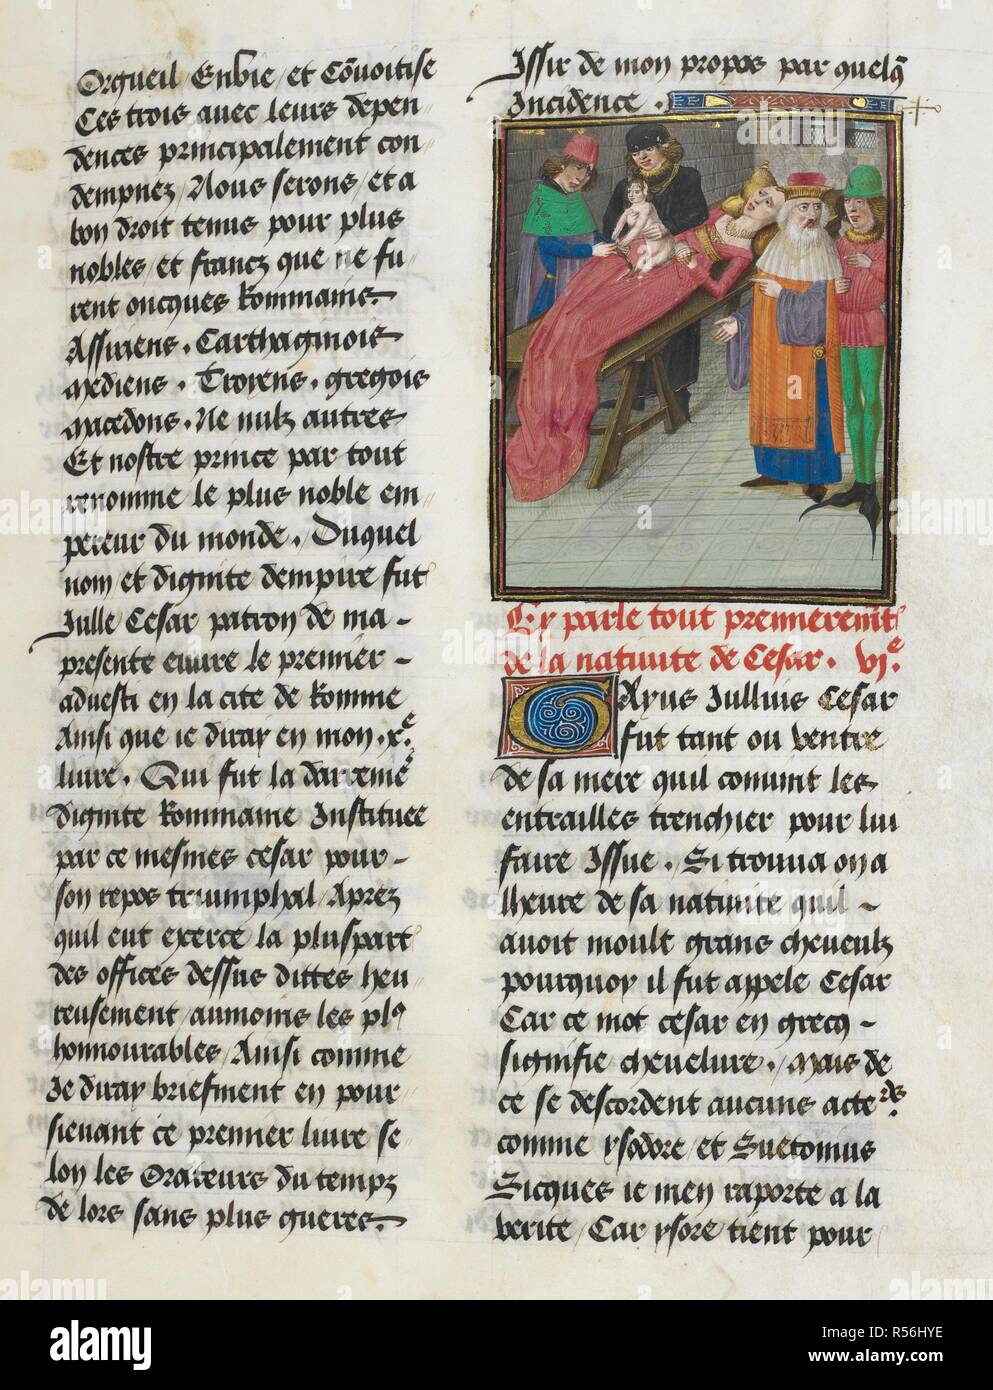 Birth of Caesar (Book 1, 6). Caesar, translated by Jan Du Quesne (or Jean Duchesne), Bellum Gallicum ( Les commentaires de Cesar ). 1473-1476. Source: Royal 16 G.VIII, f.32. Author: JULIUS CAESAR. Du Quesne, Jehan. Circle of the Master of the London Wavrin. - Stock Image